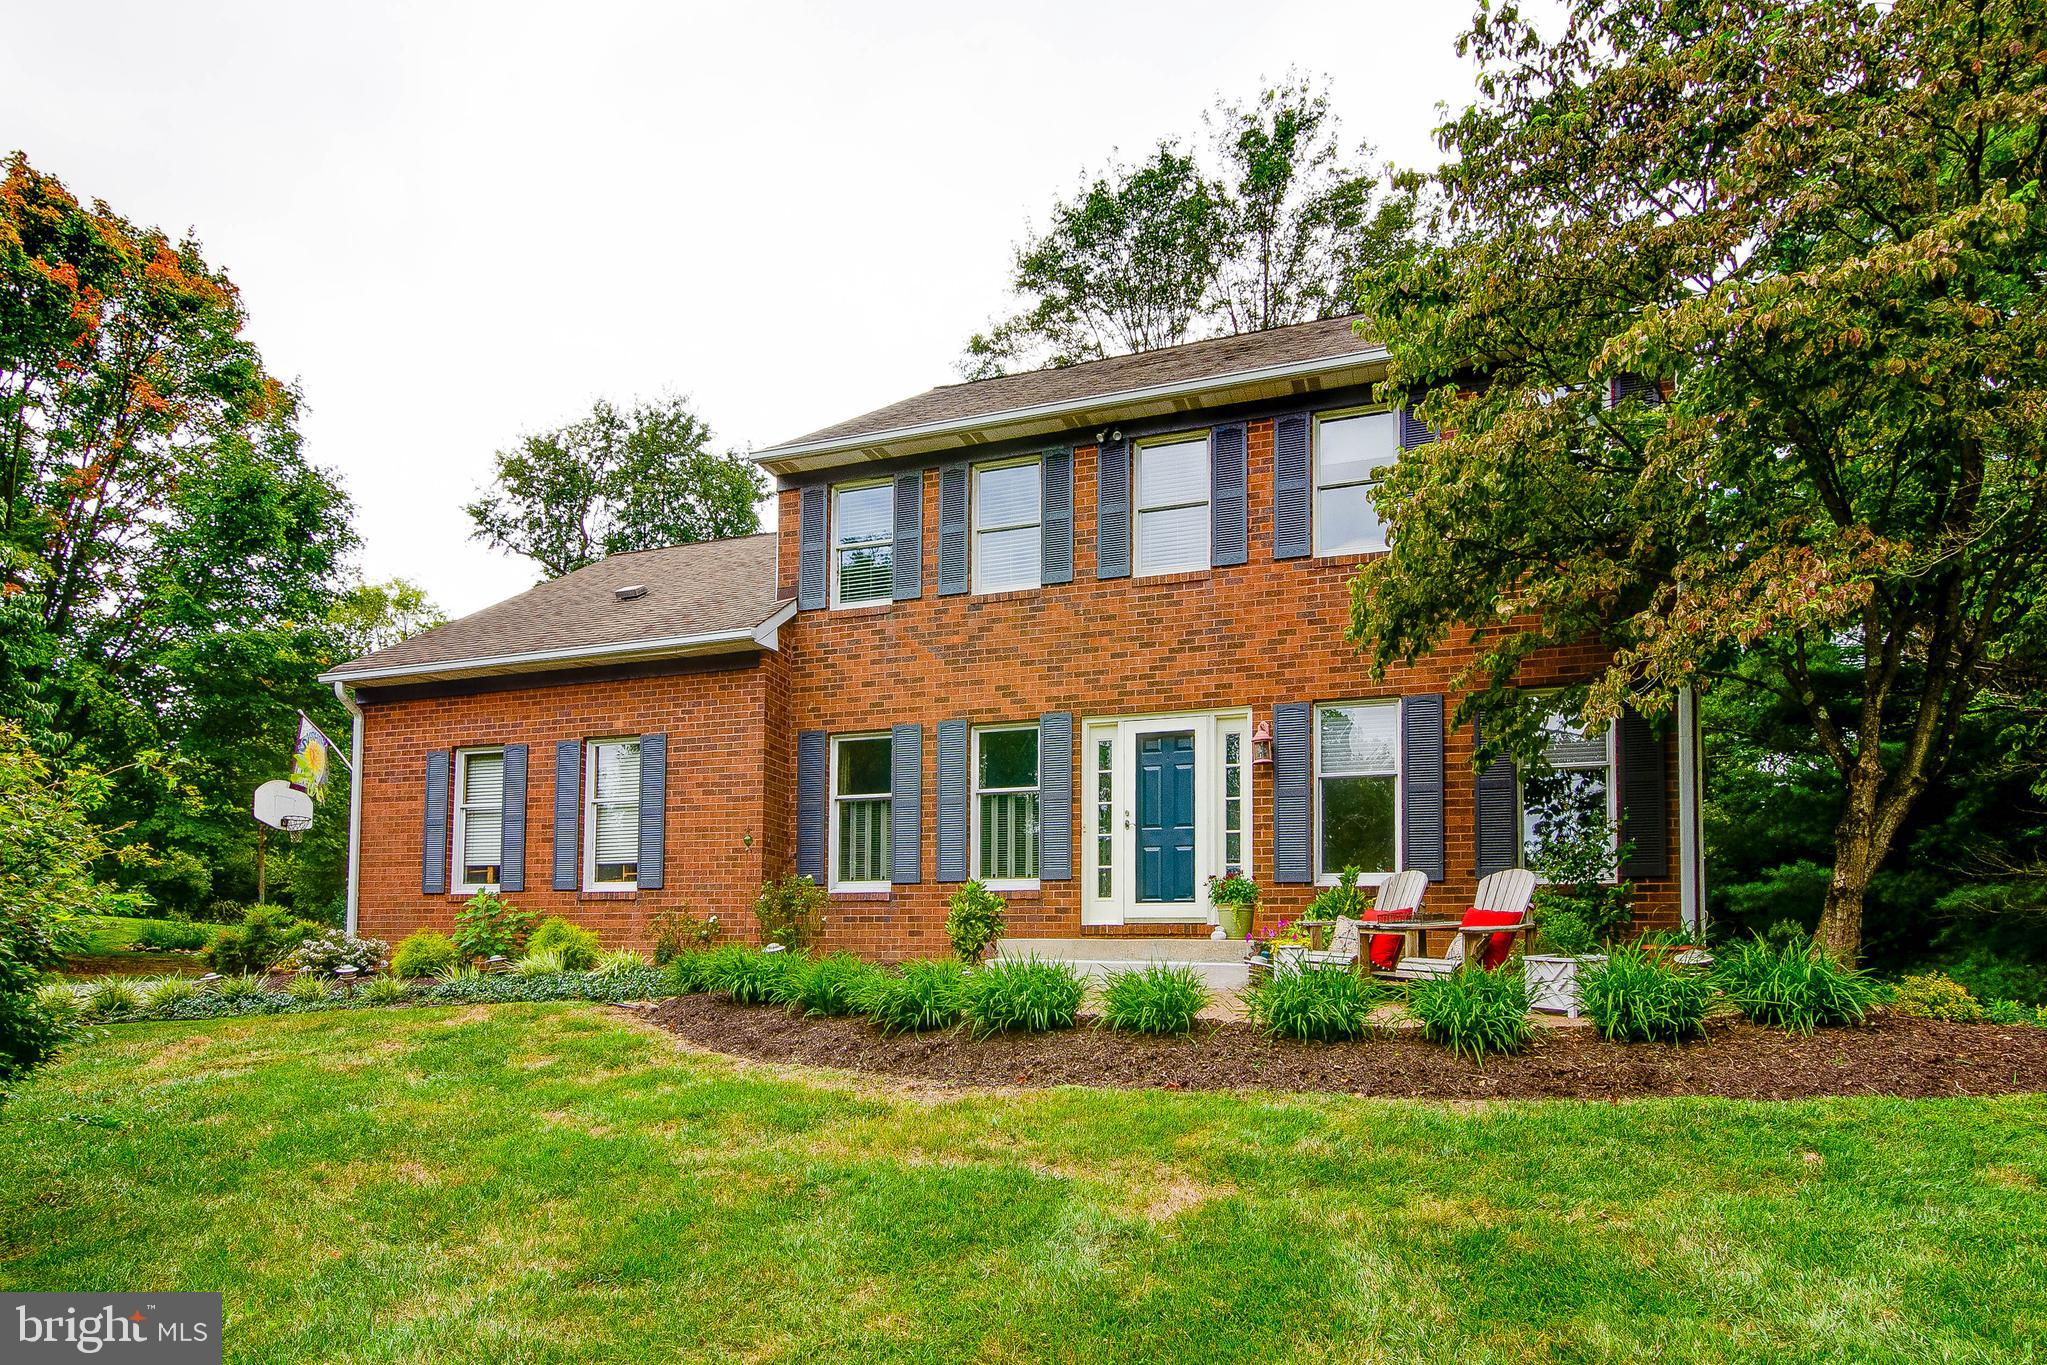 4050 ROXMILL COURT, GLENWOOD, MD 21738